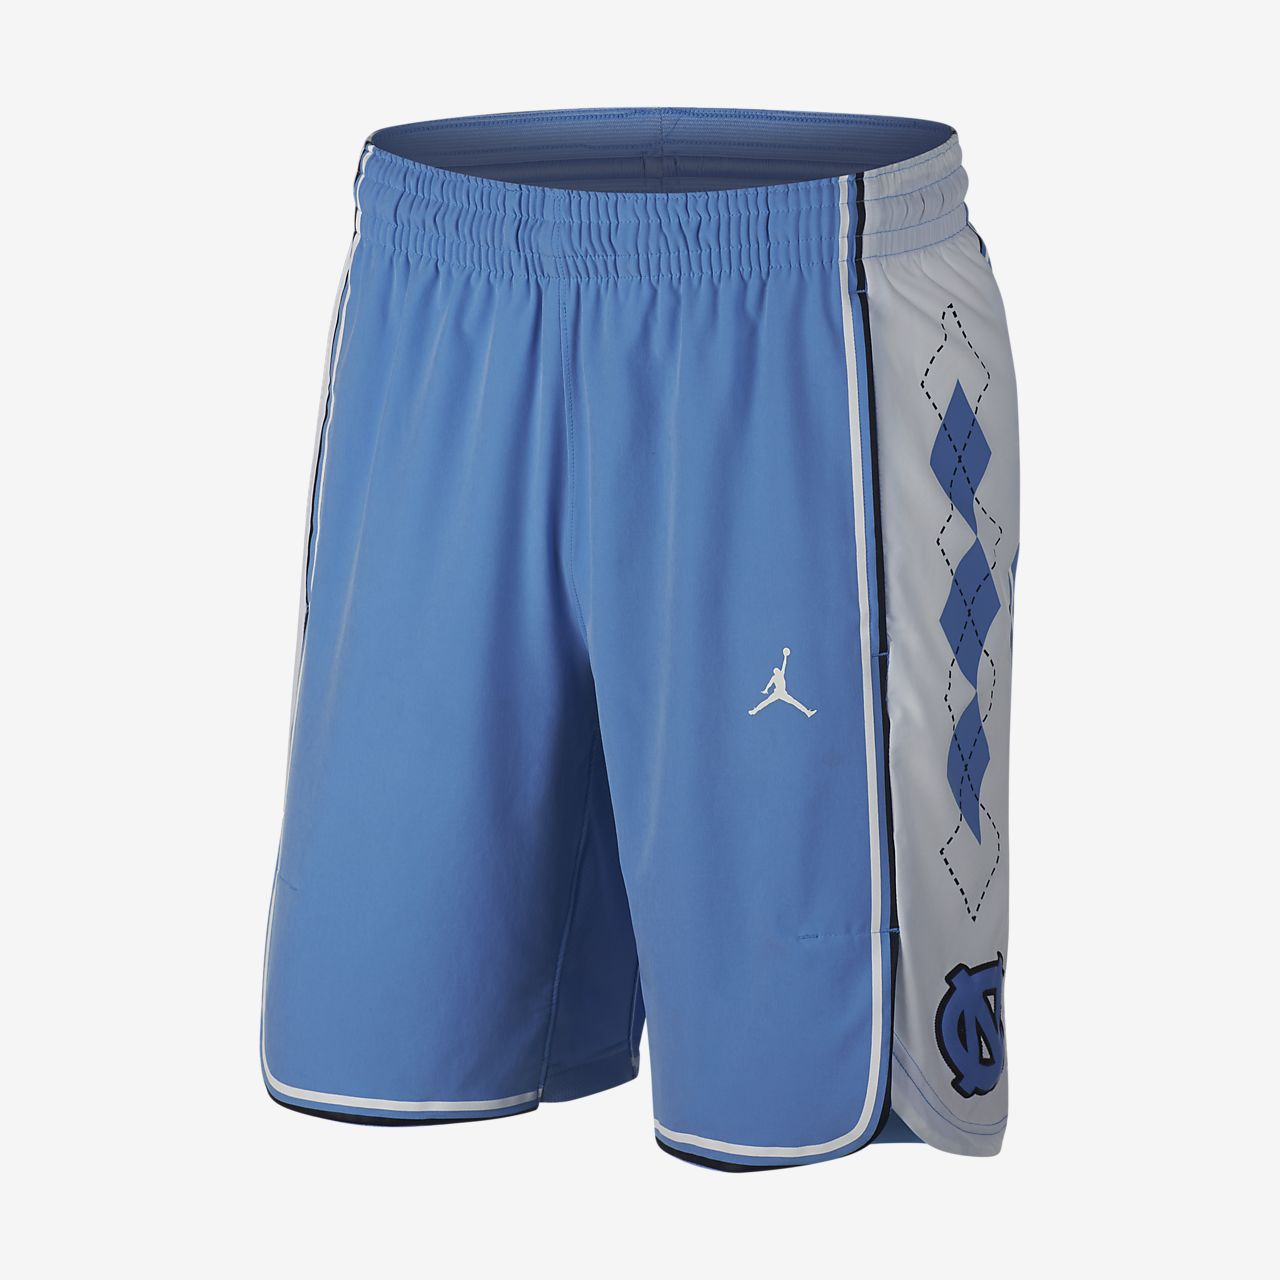 9ec6c9ba6b64 Jordan College Authentic (UNC) Men s Basketball Shorts . Nike.com